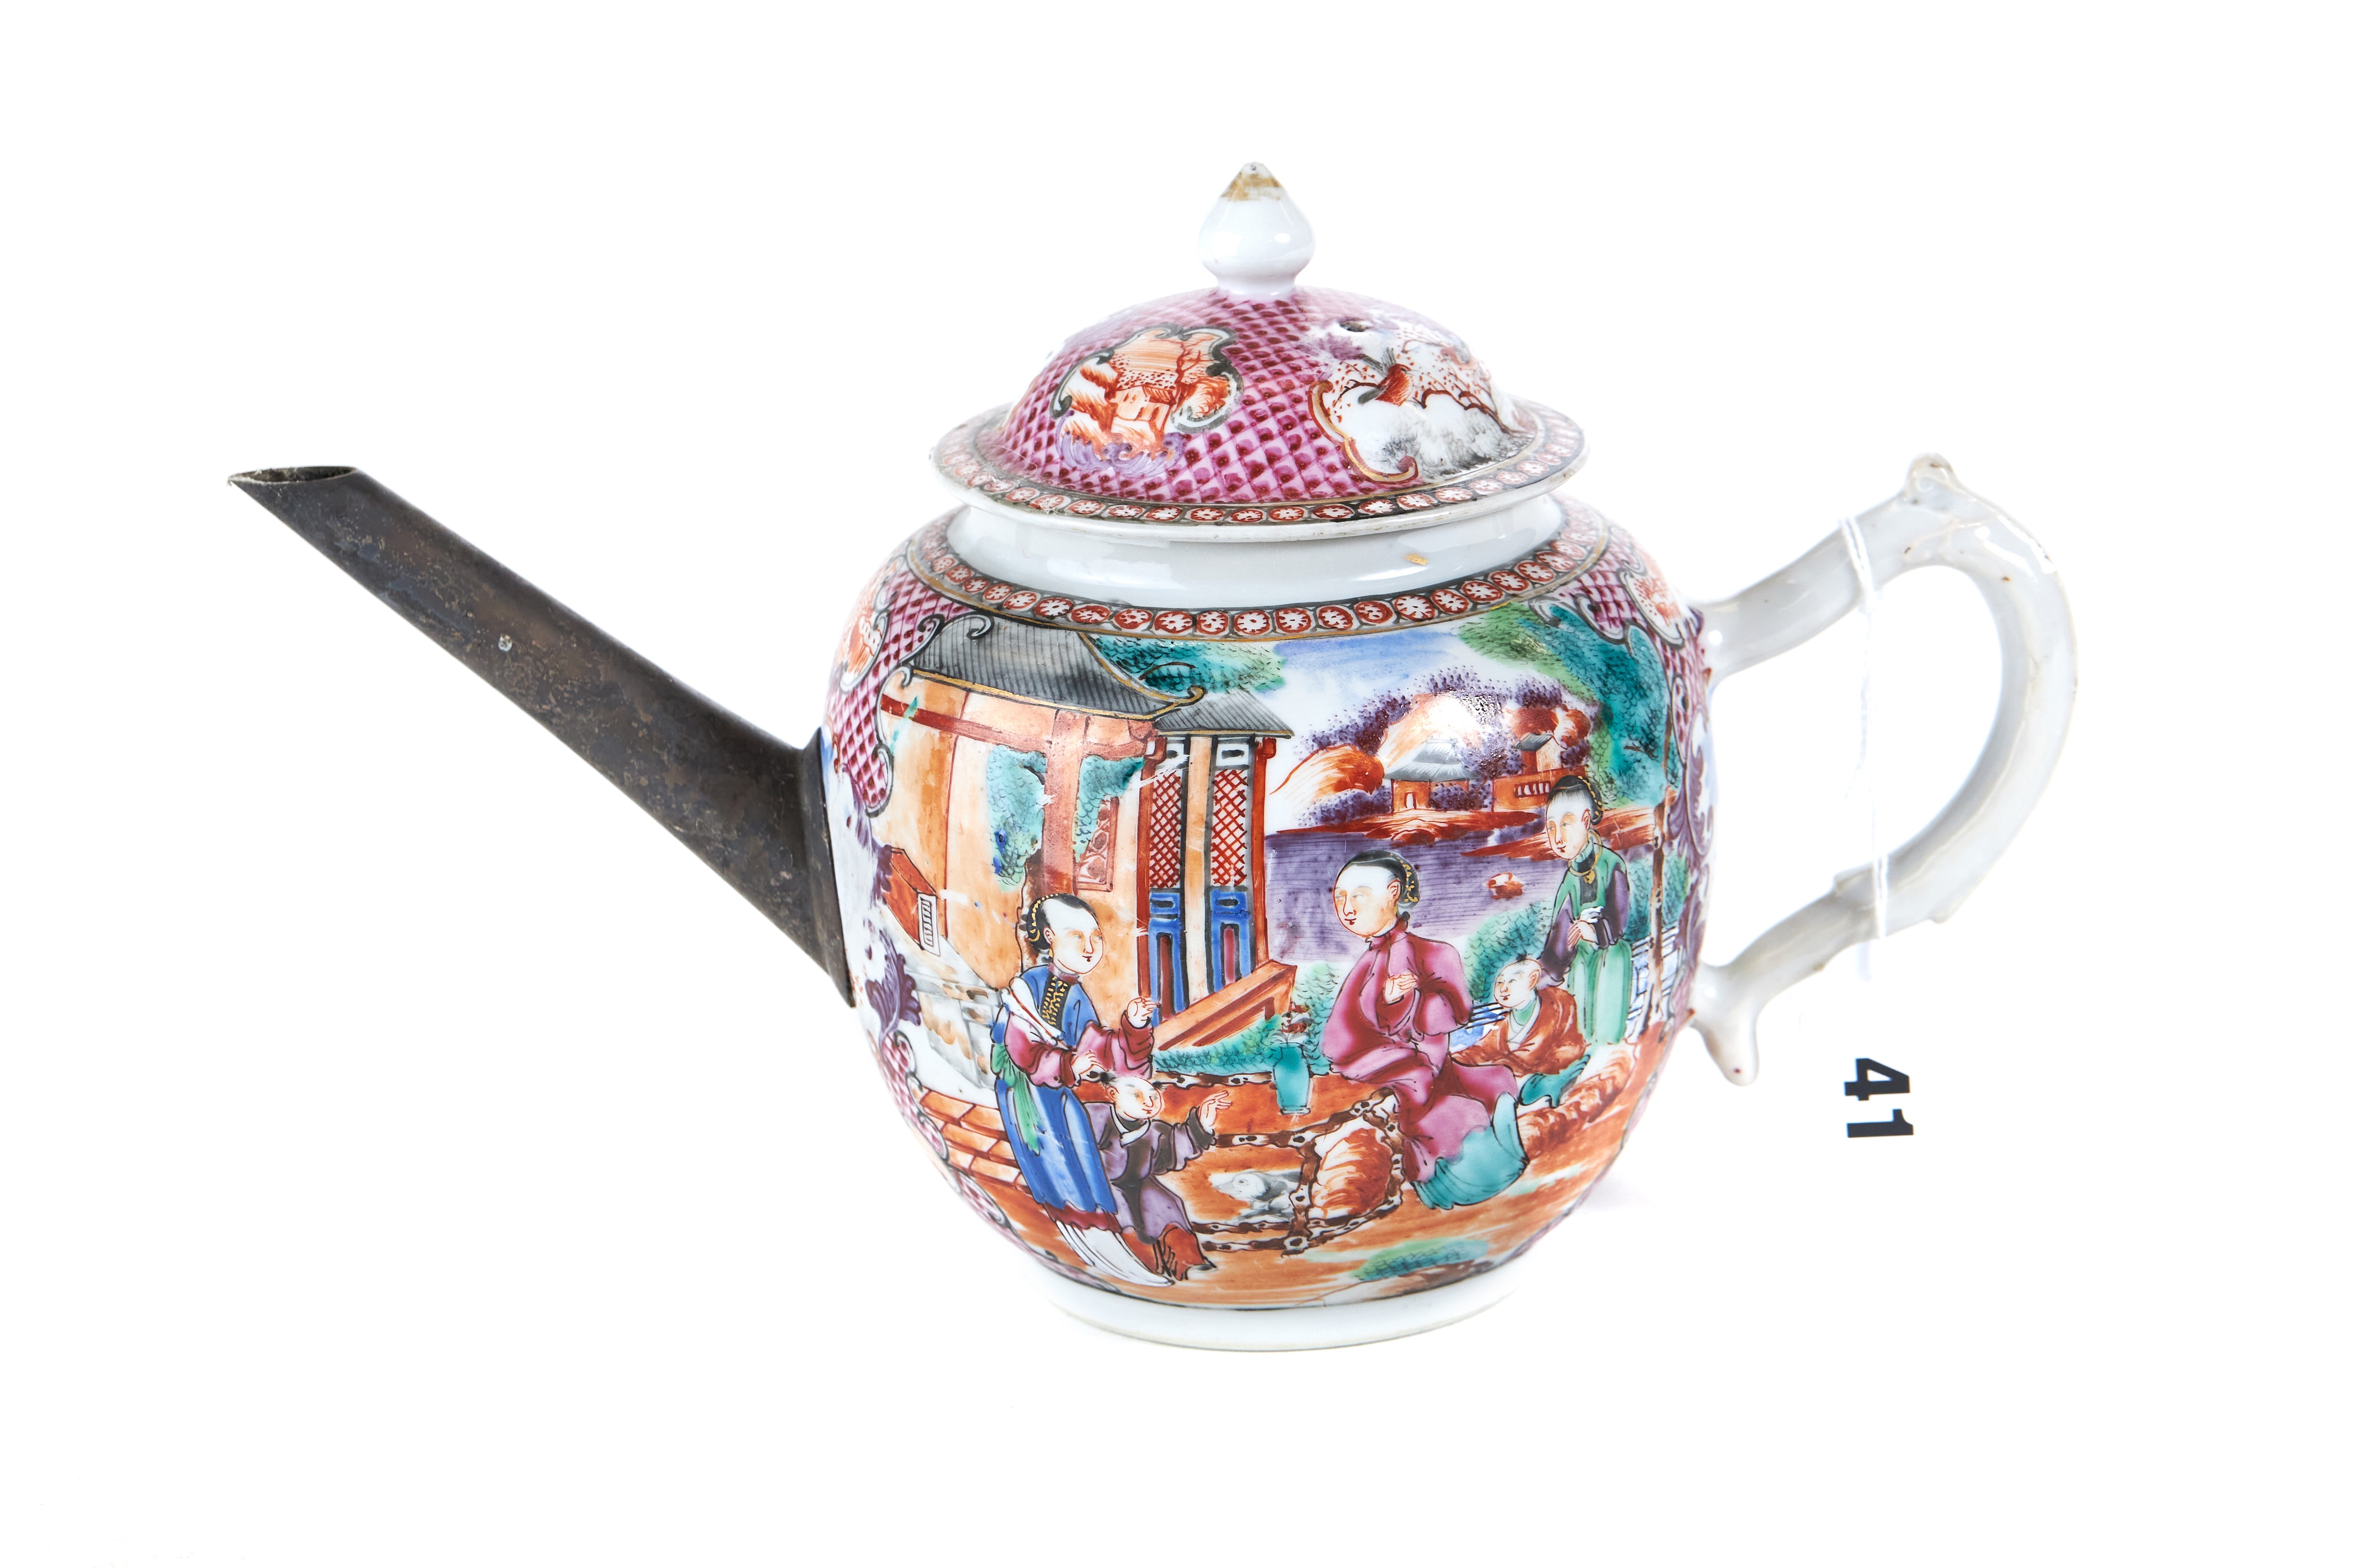 AN 18TH CENTURY CHINESE PORCELAIN MANDARIN PATTERN TEAPOT AND COVER with pink trellis ground,